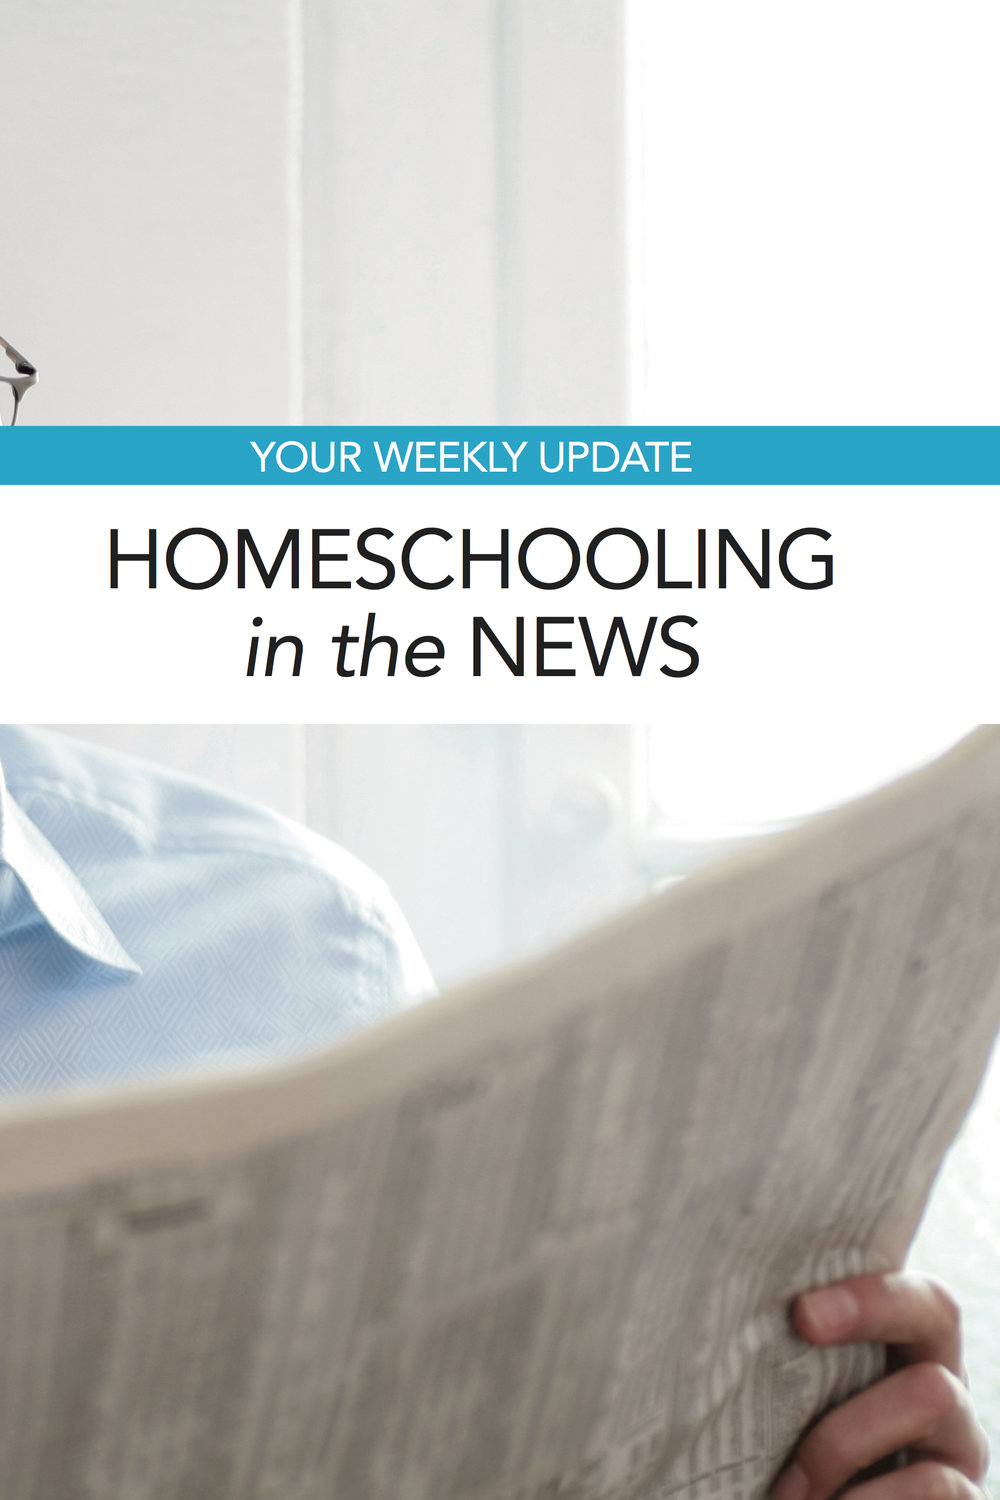 A little roundup of homeschool stories in the news